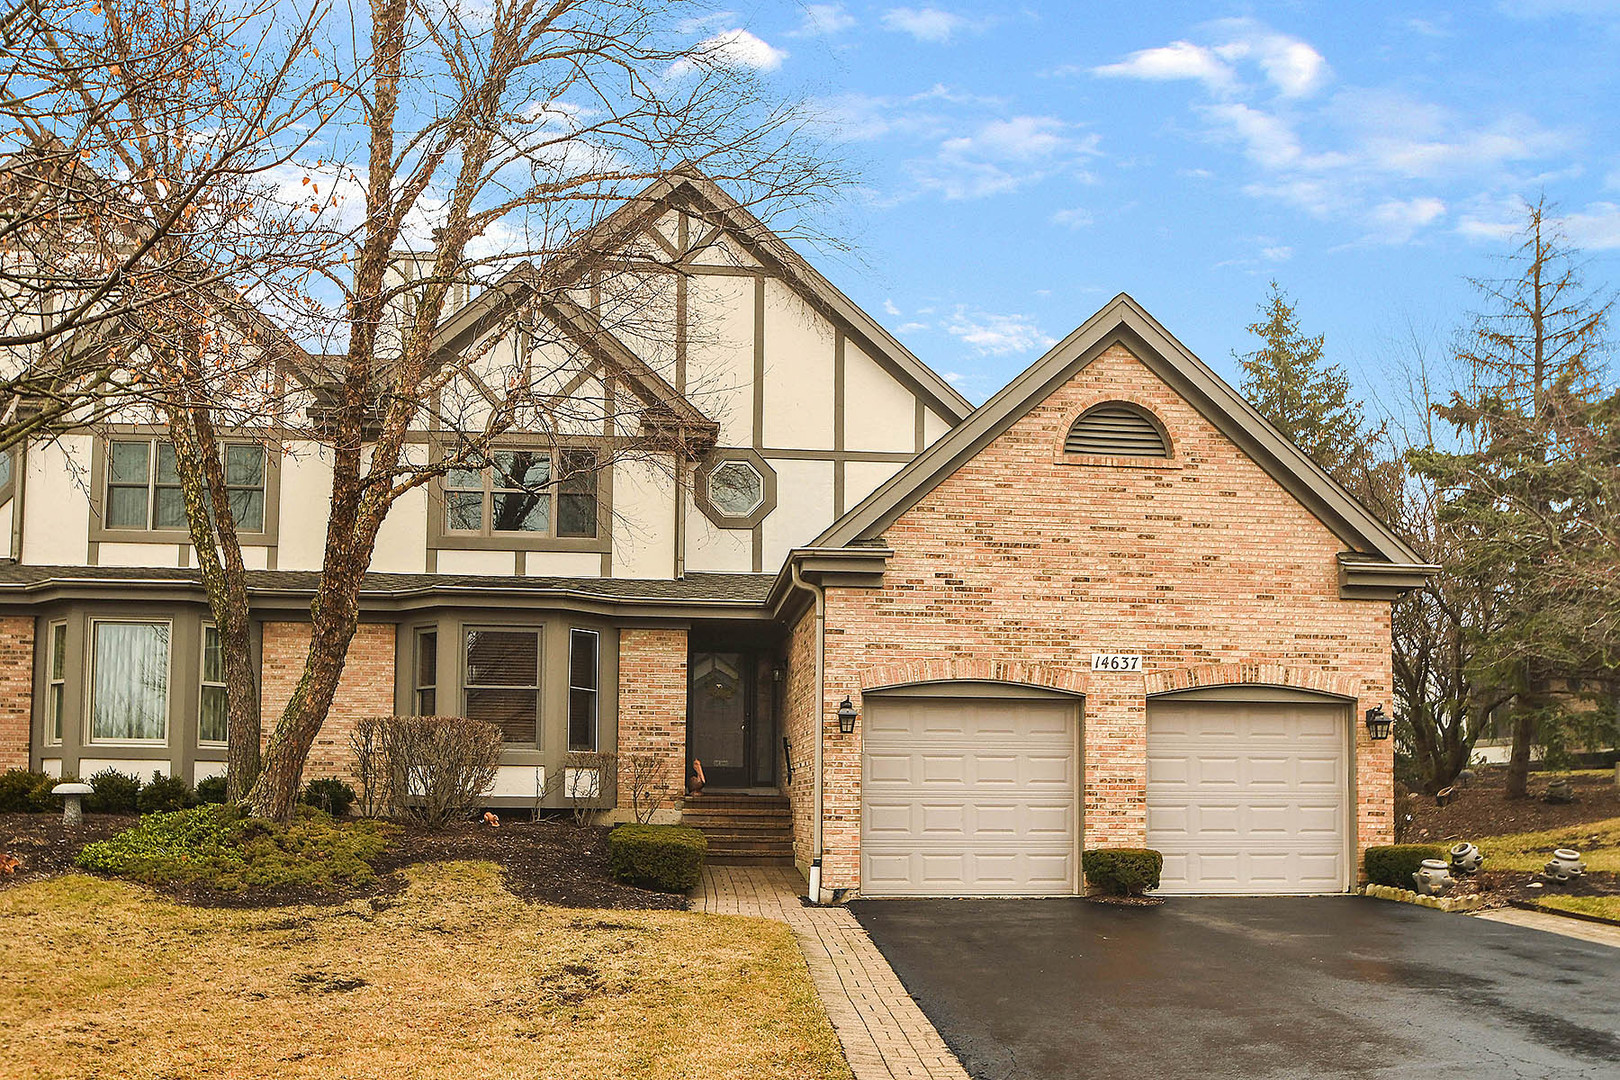 14637 Golf Road, Orland Park, Illinois